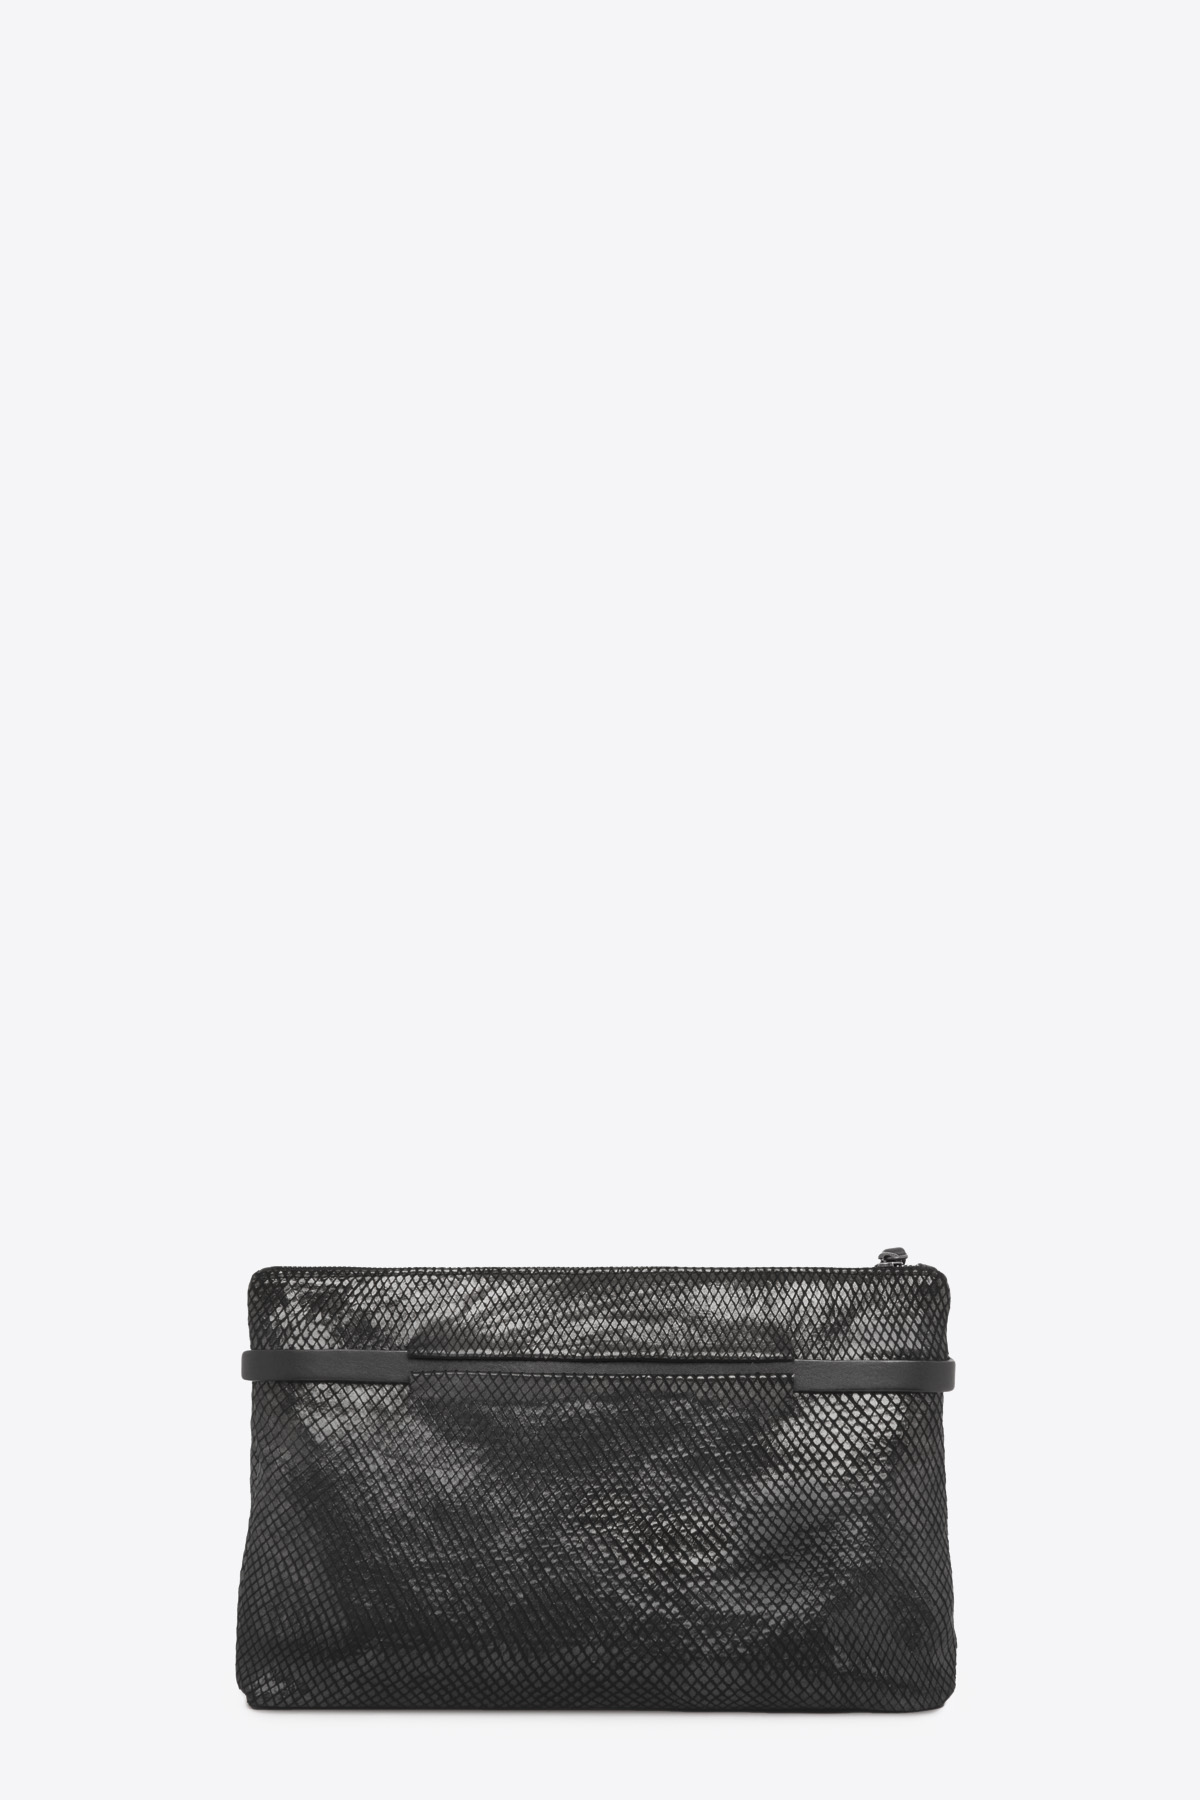 dclr004l-tapeclutch-a23-backsnakeblack-back